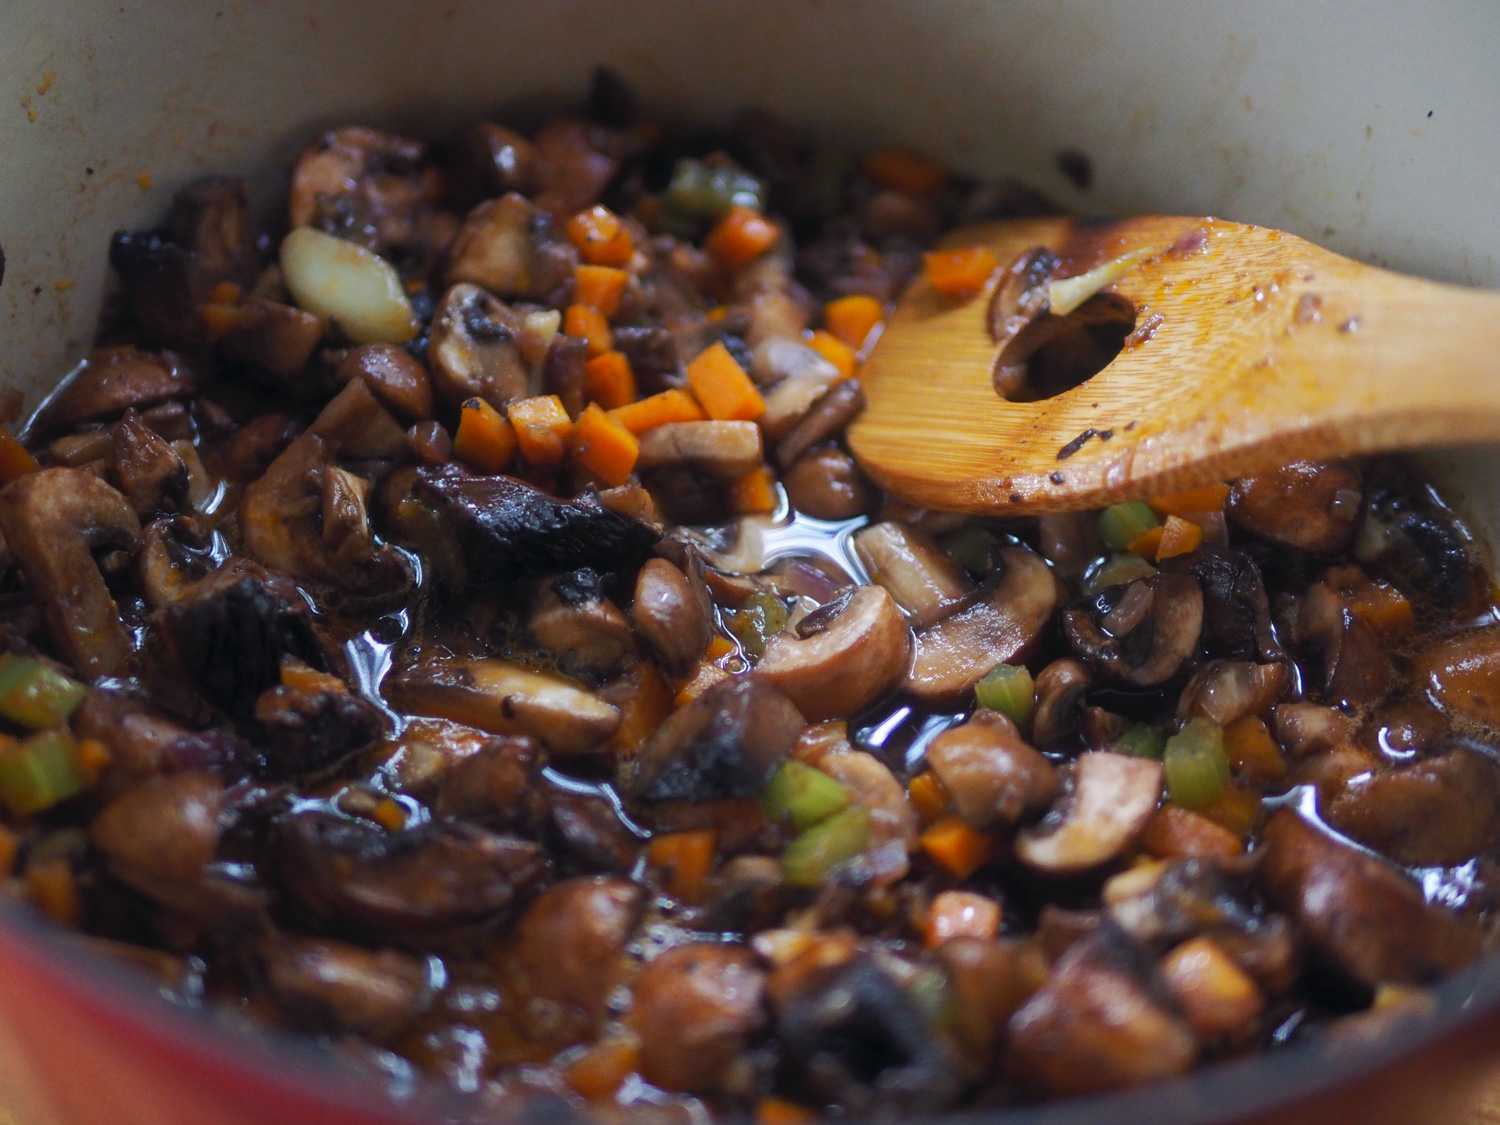 This really is a pot full of mushrooms.